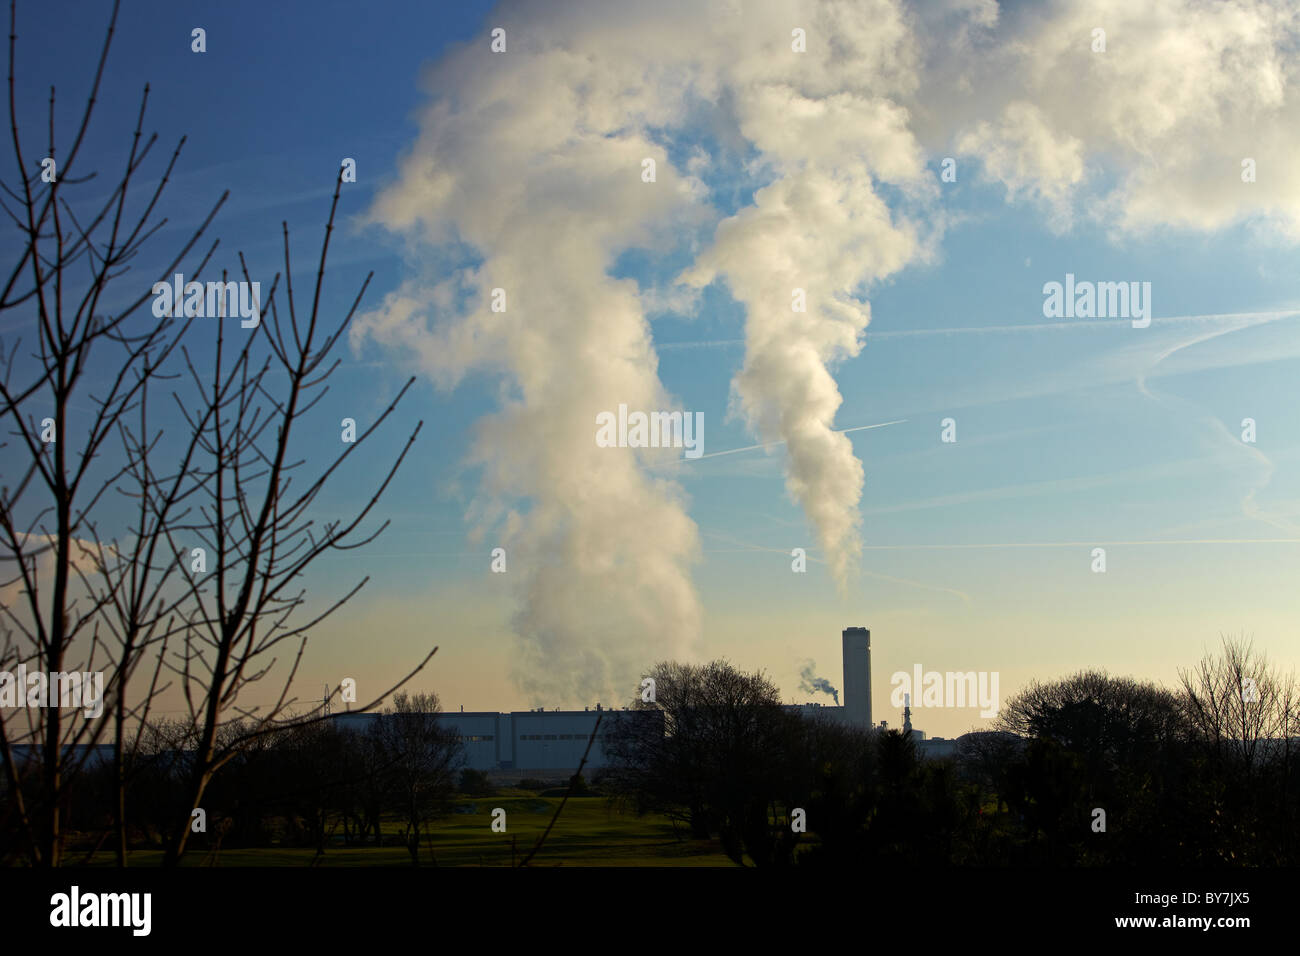 Pollution from BP Chemical Works, Port Talbot, South Wales, UK - Stock Image